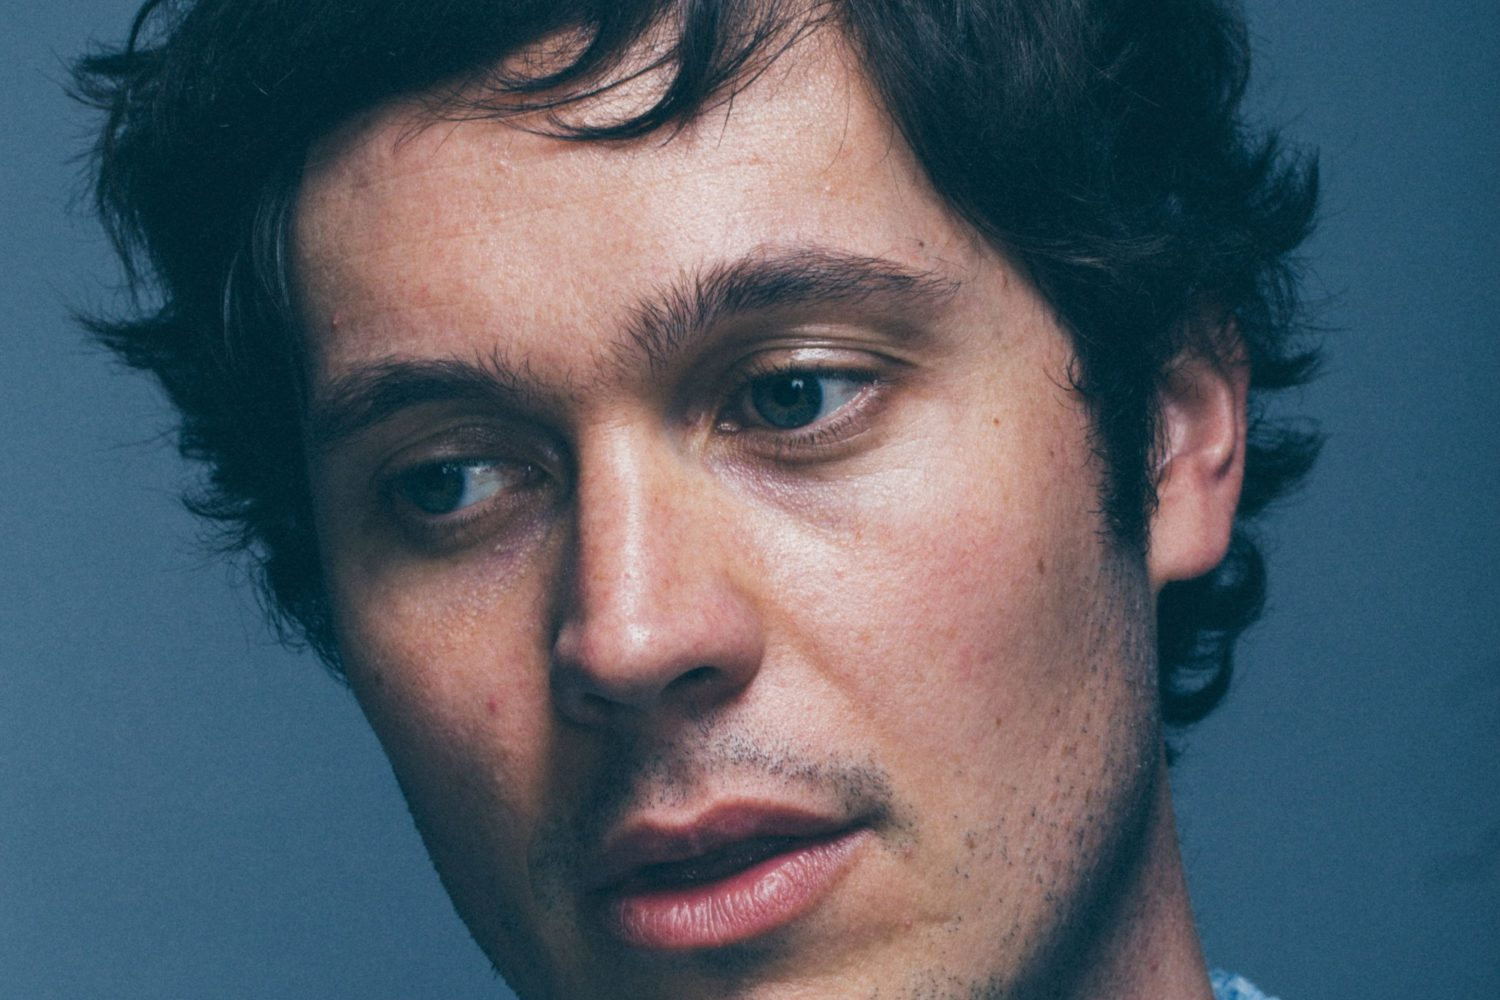 Washed Out has announced new European tour dates